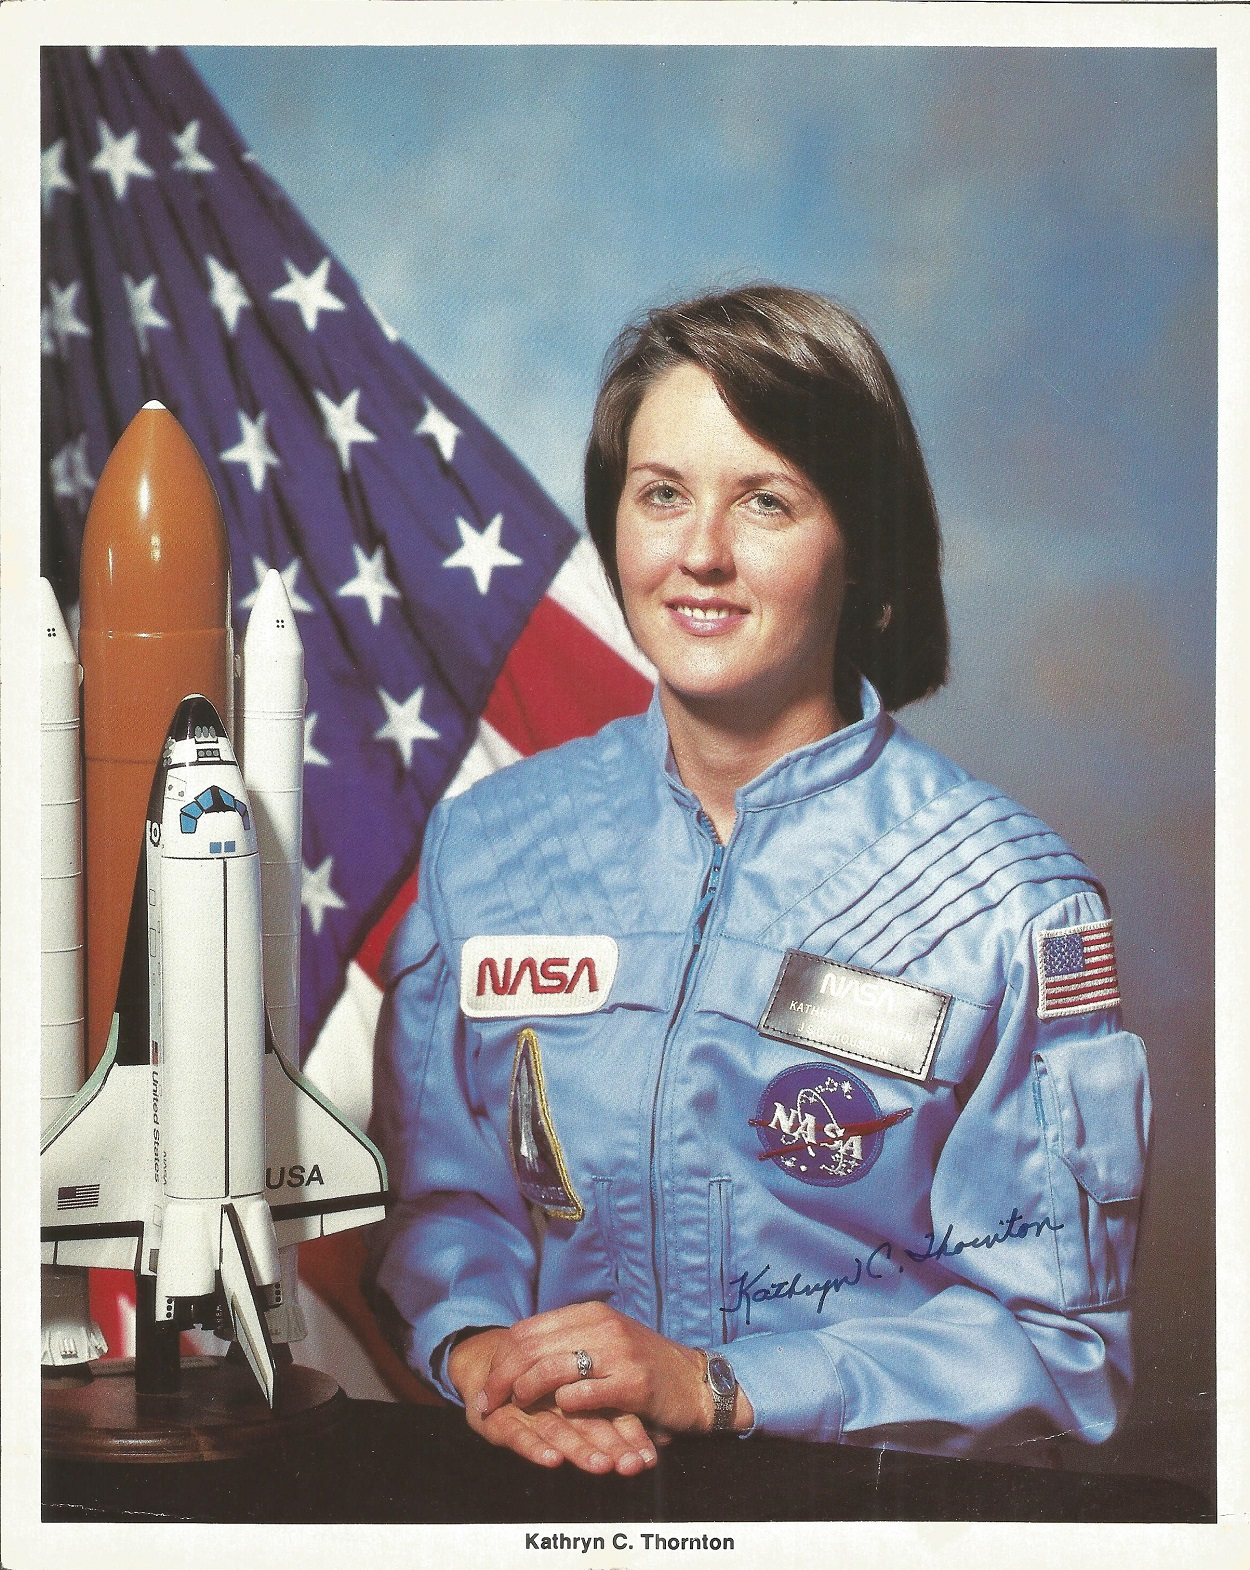 NASA collection 13 autopen machine generated autographs on colour photos includes Neil Armstrong - Image 4 of 6